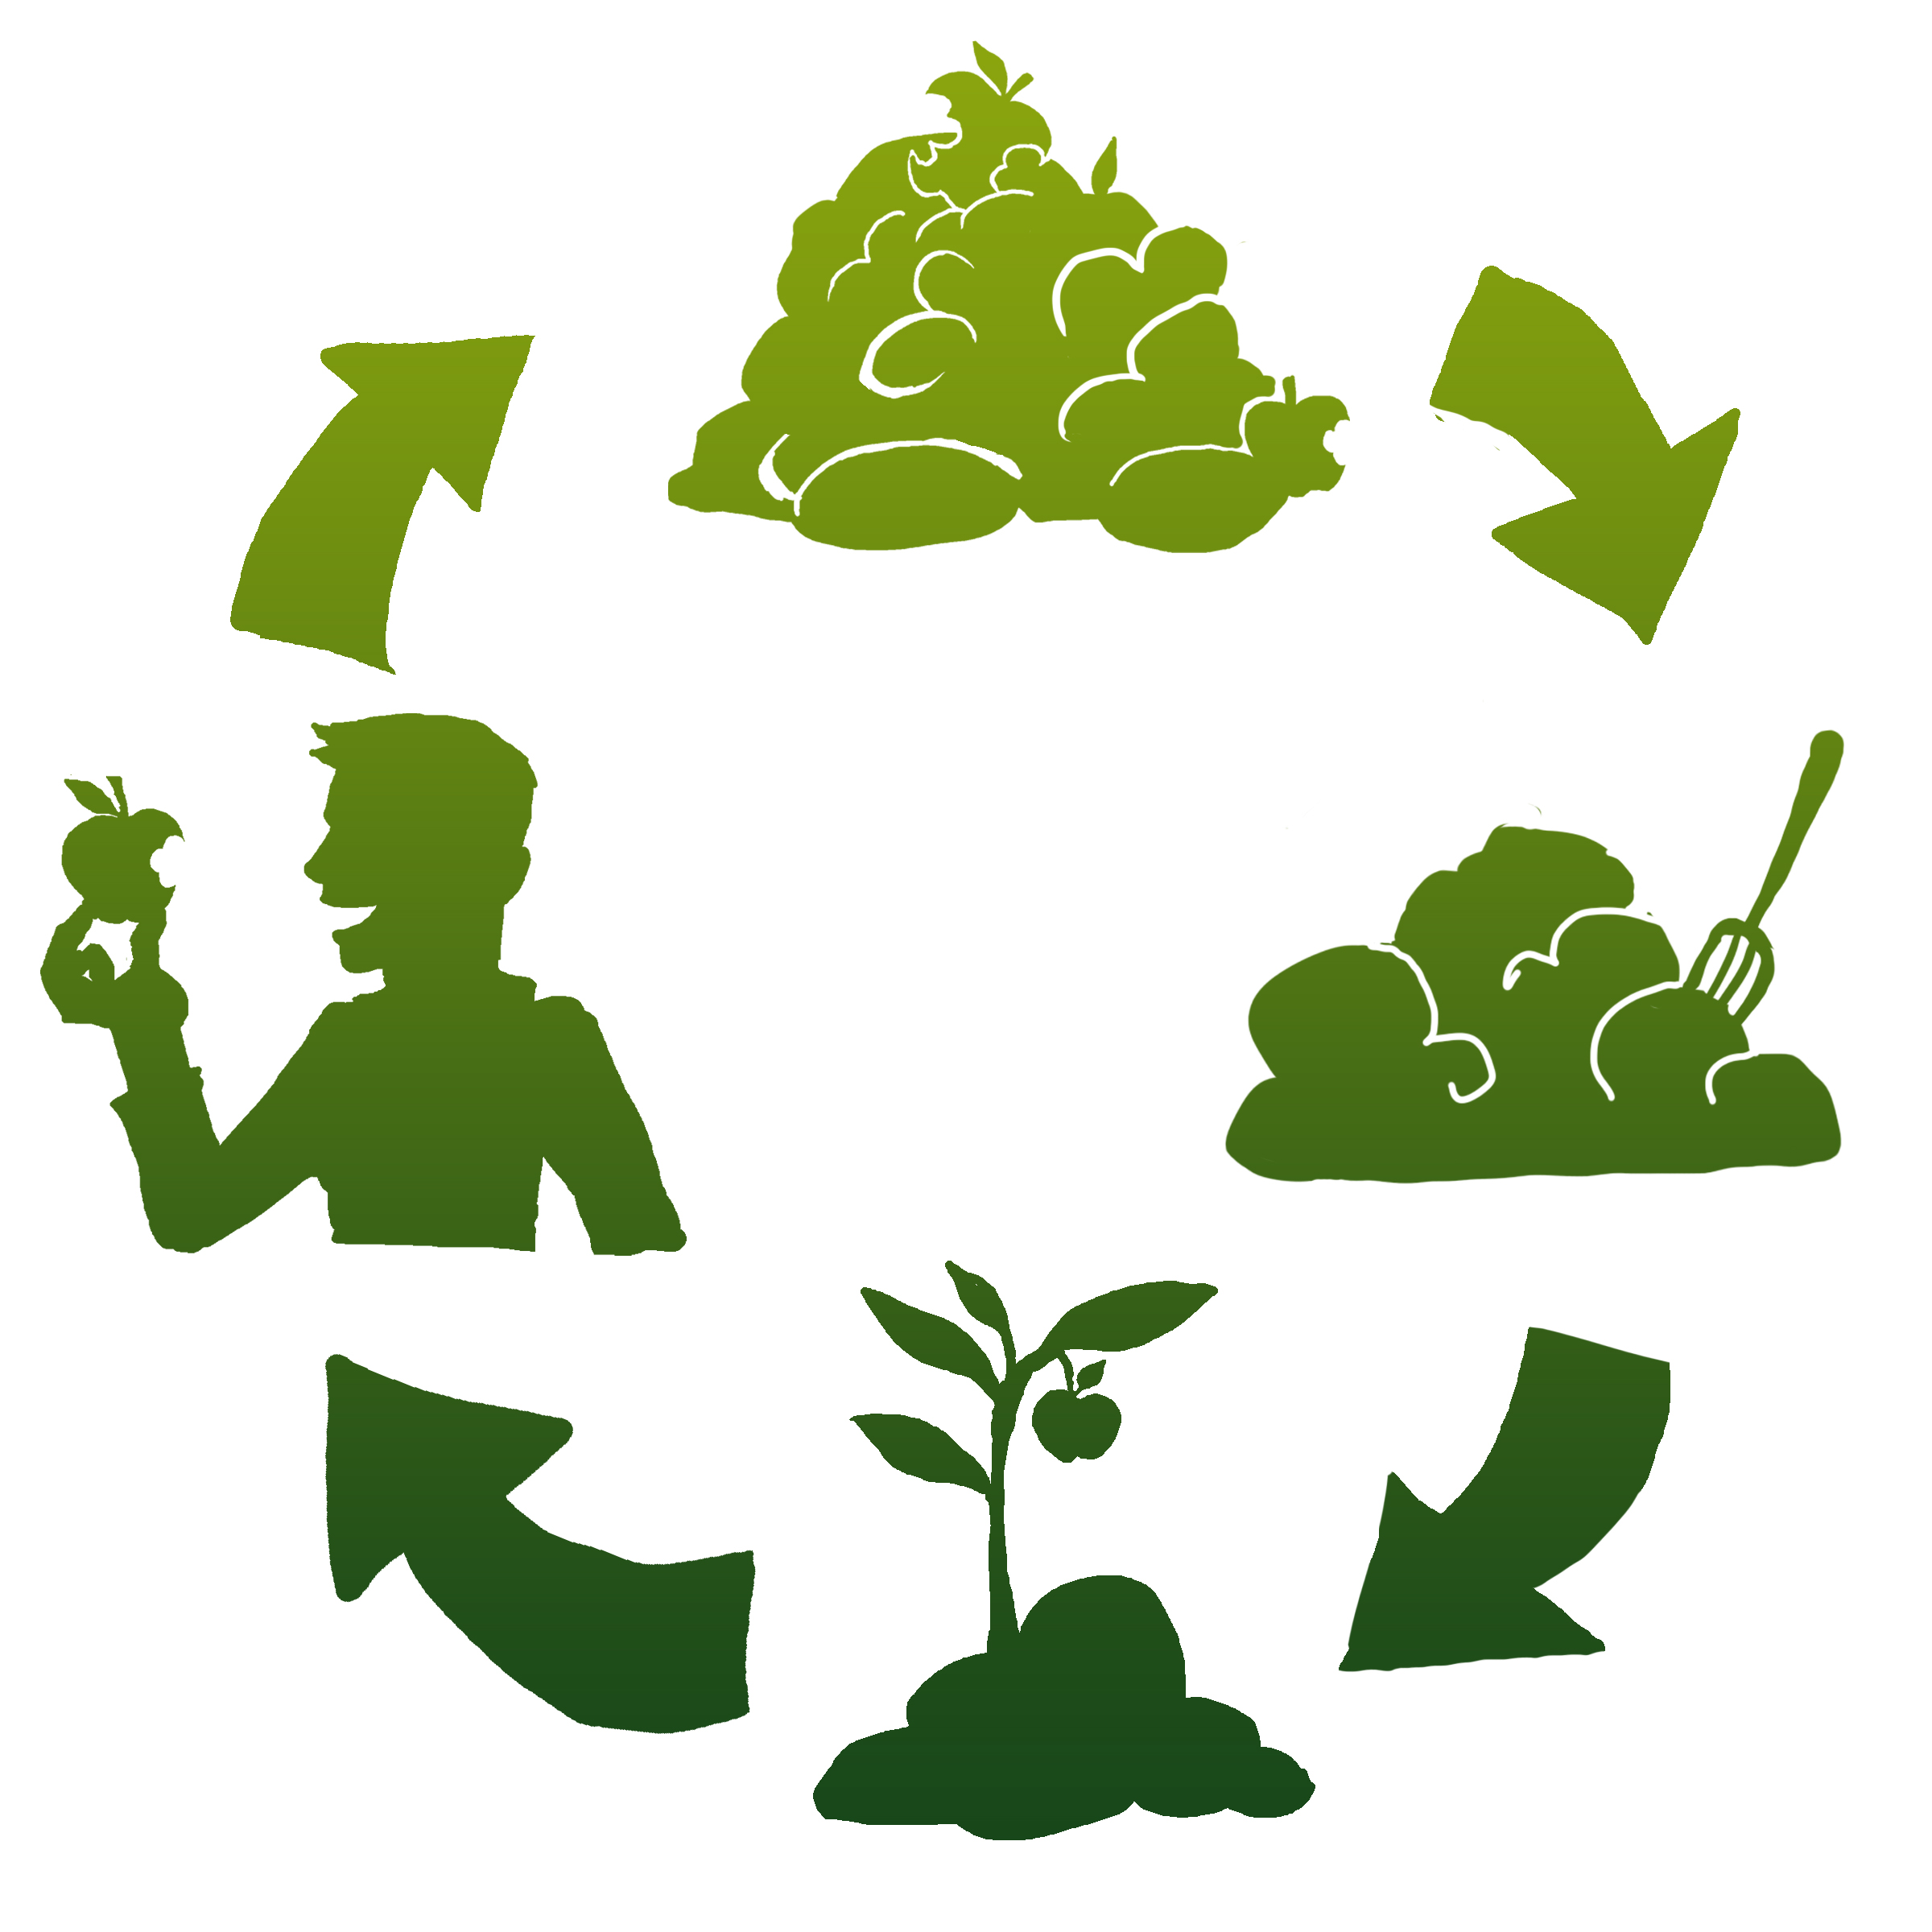 Agriculture clipart sustainable agriculture. Composting within a writer